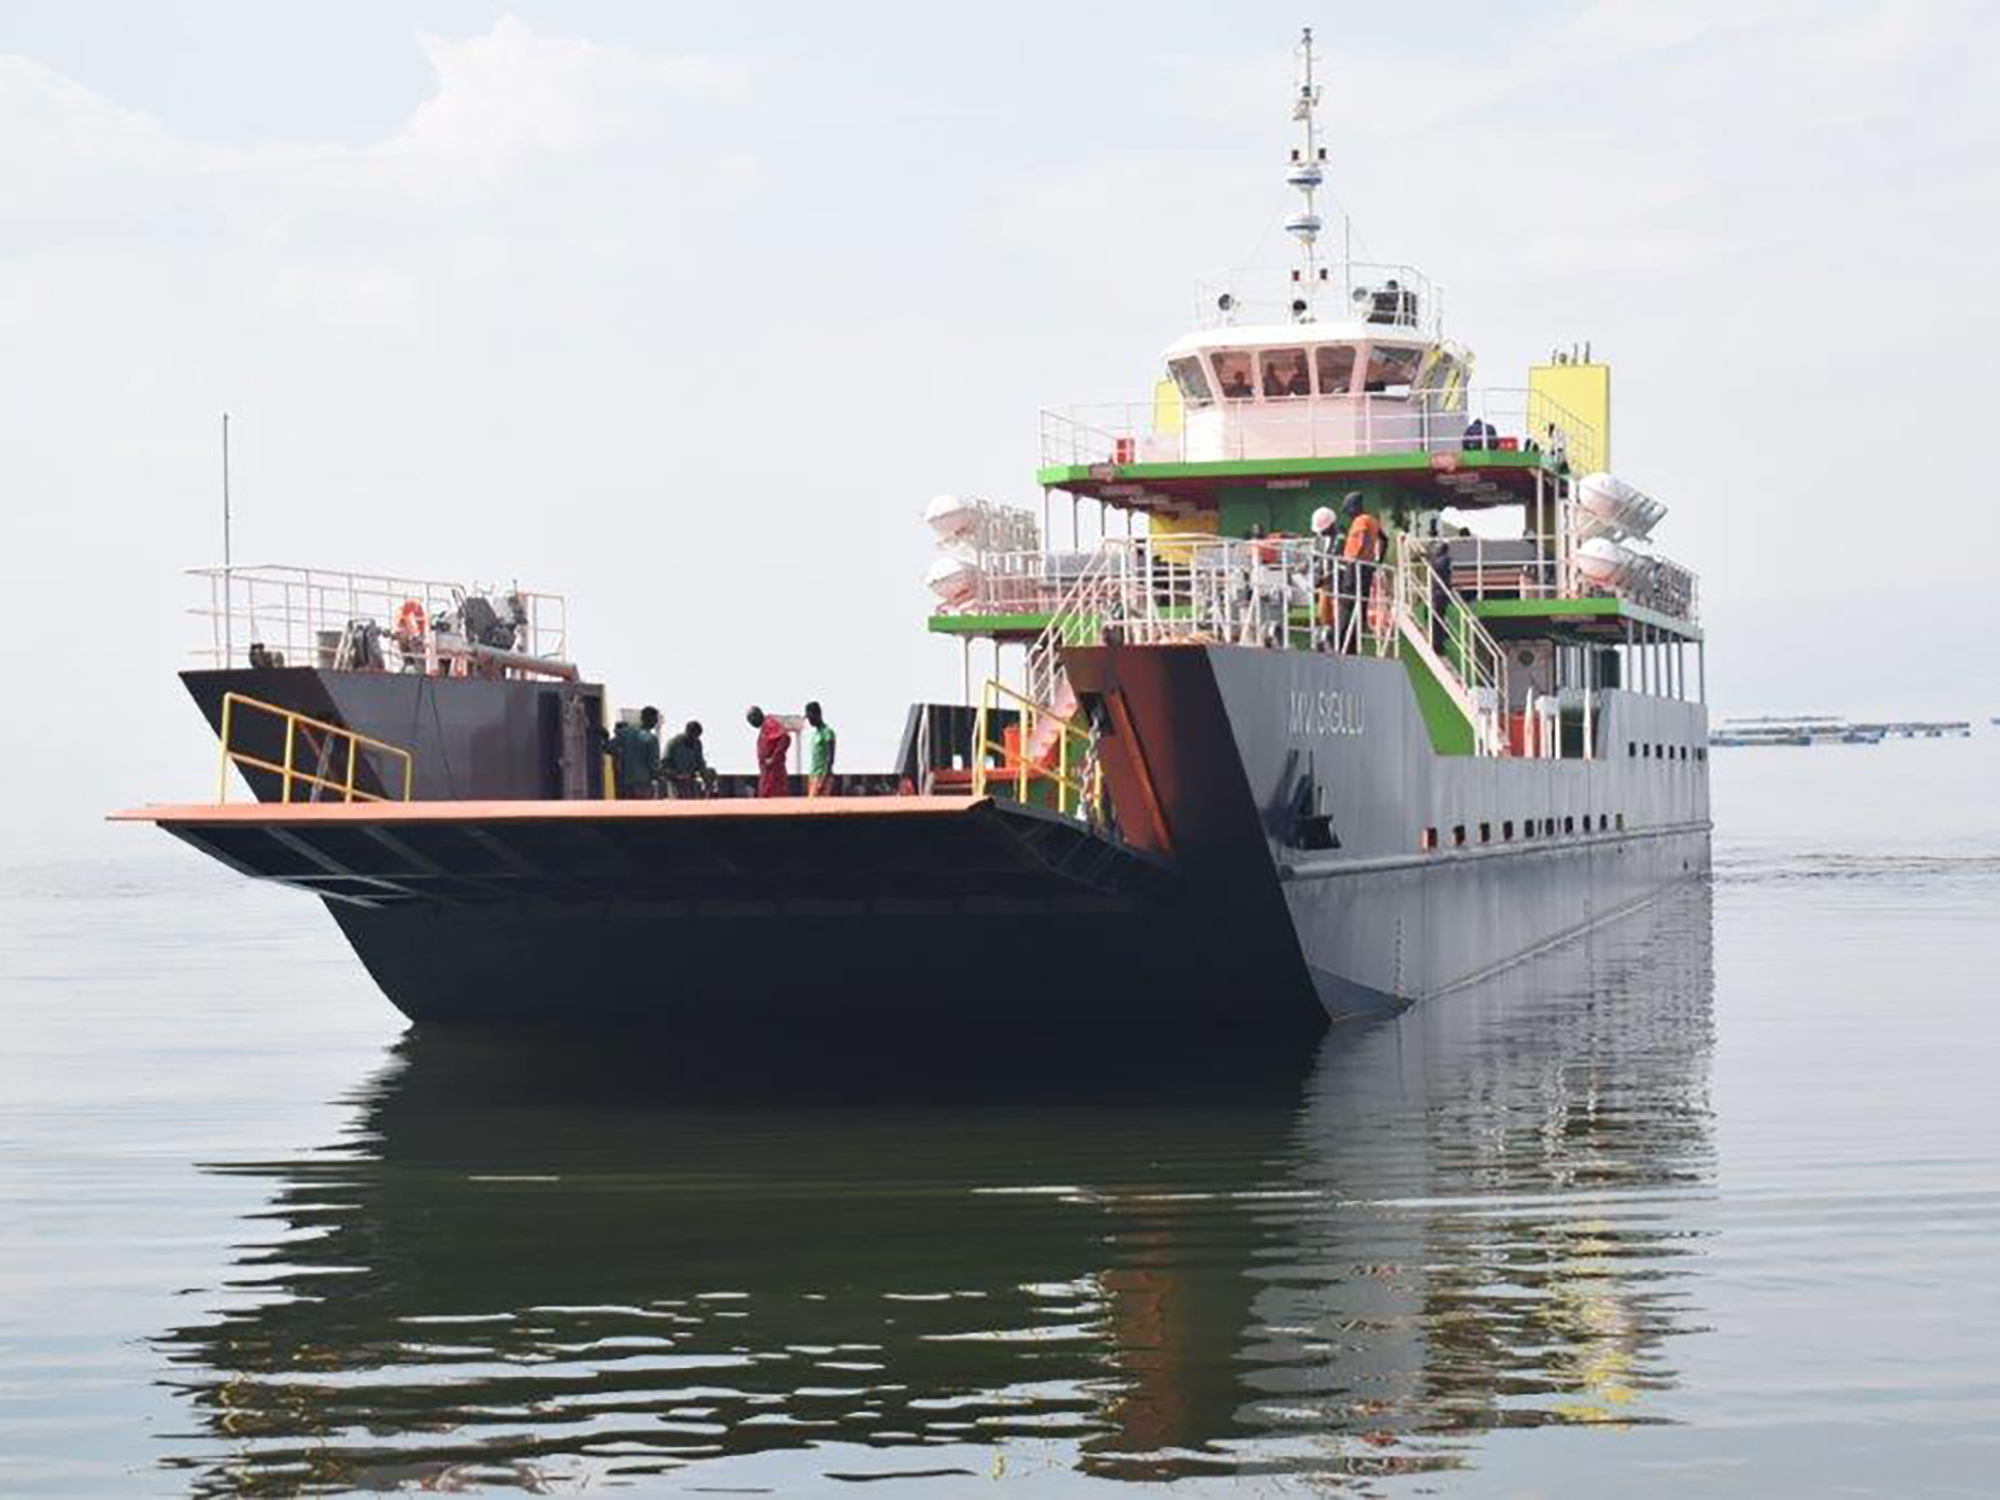 mv-sigulu-engines-ferry-featured